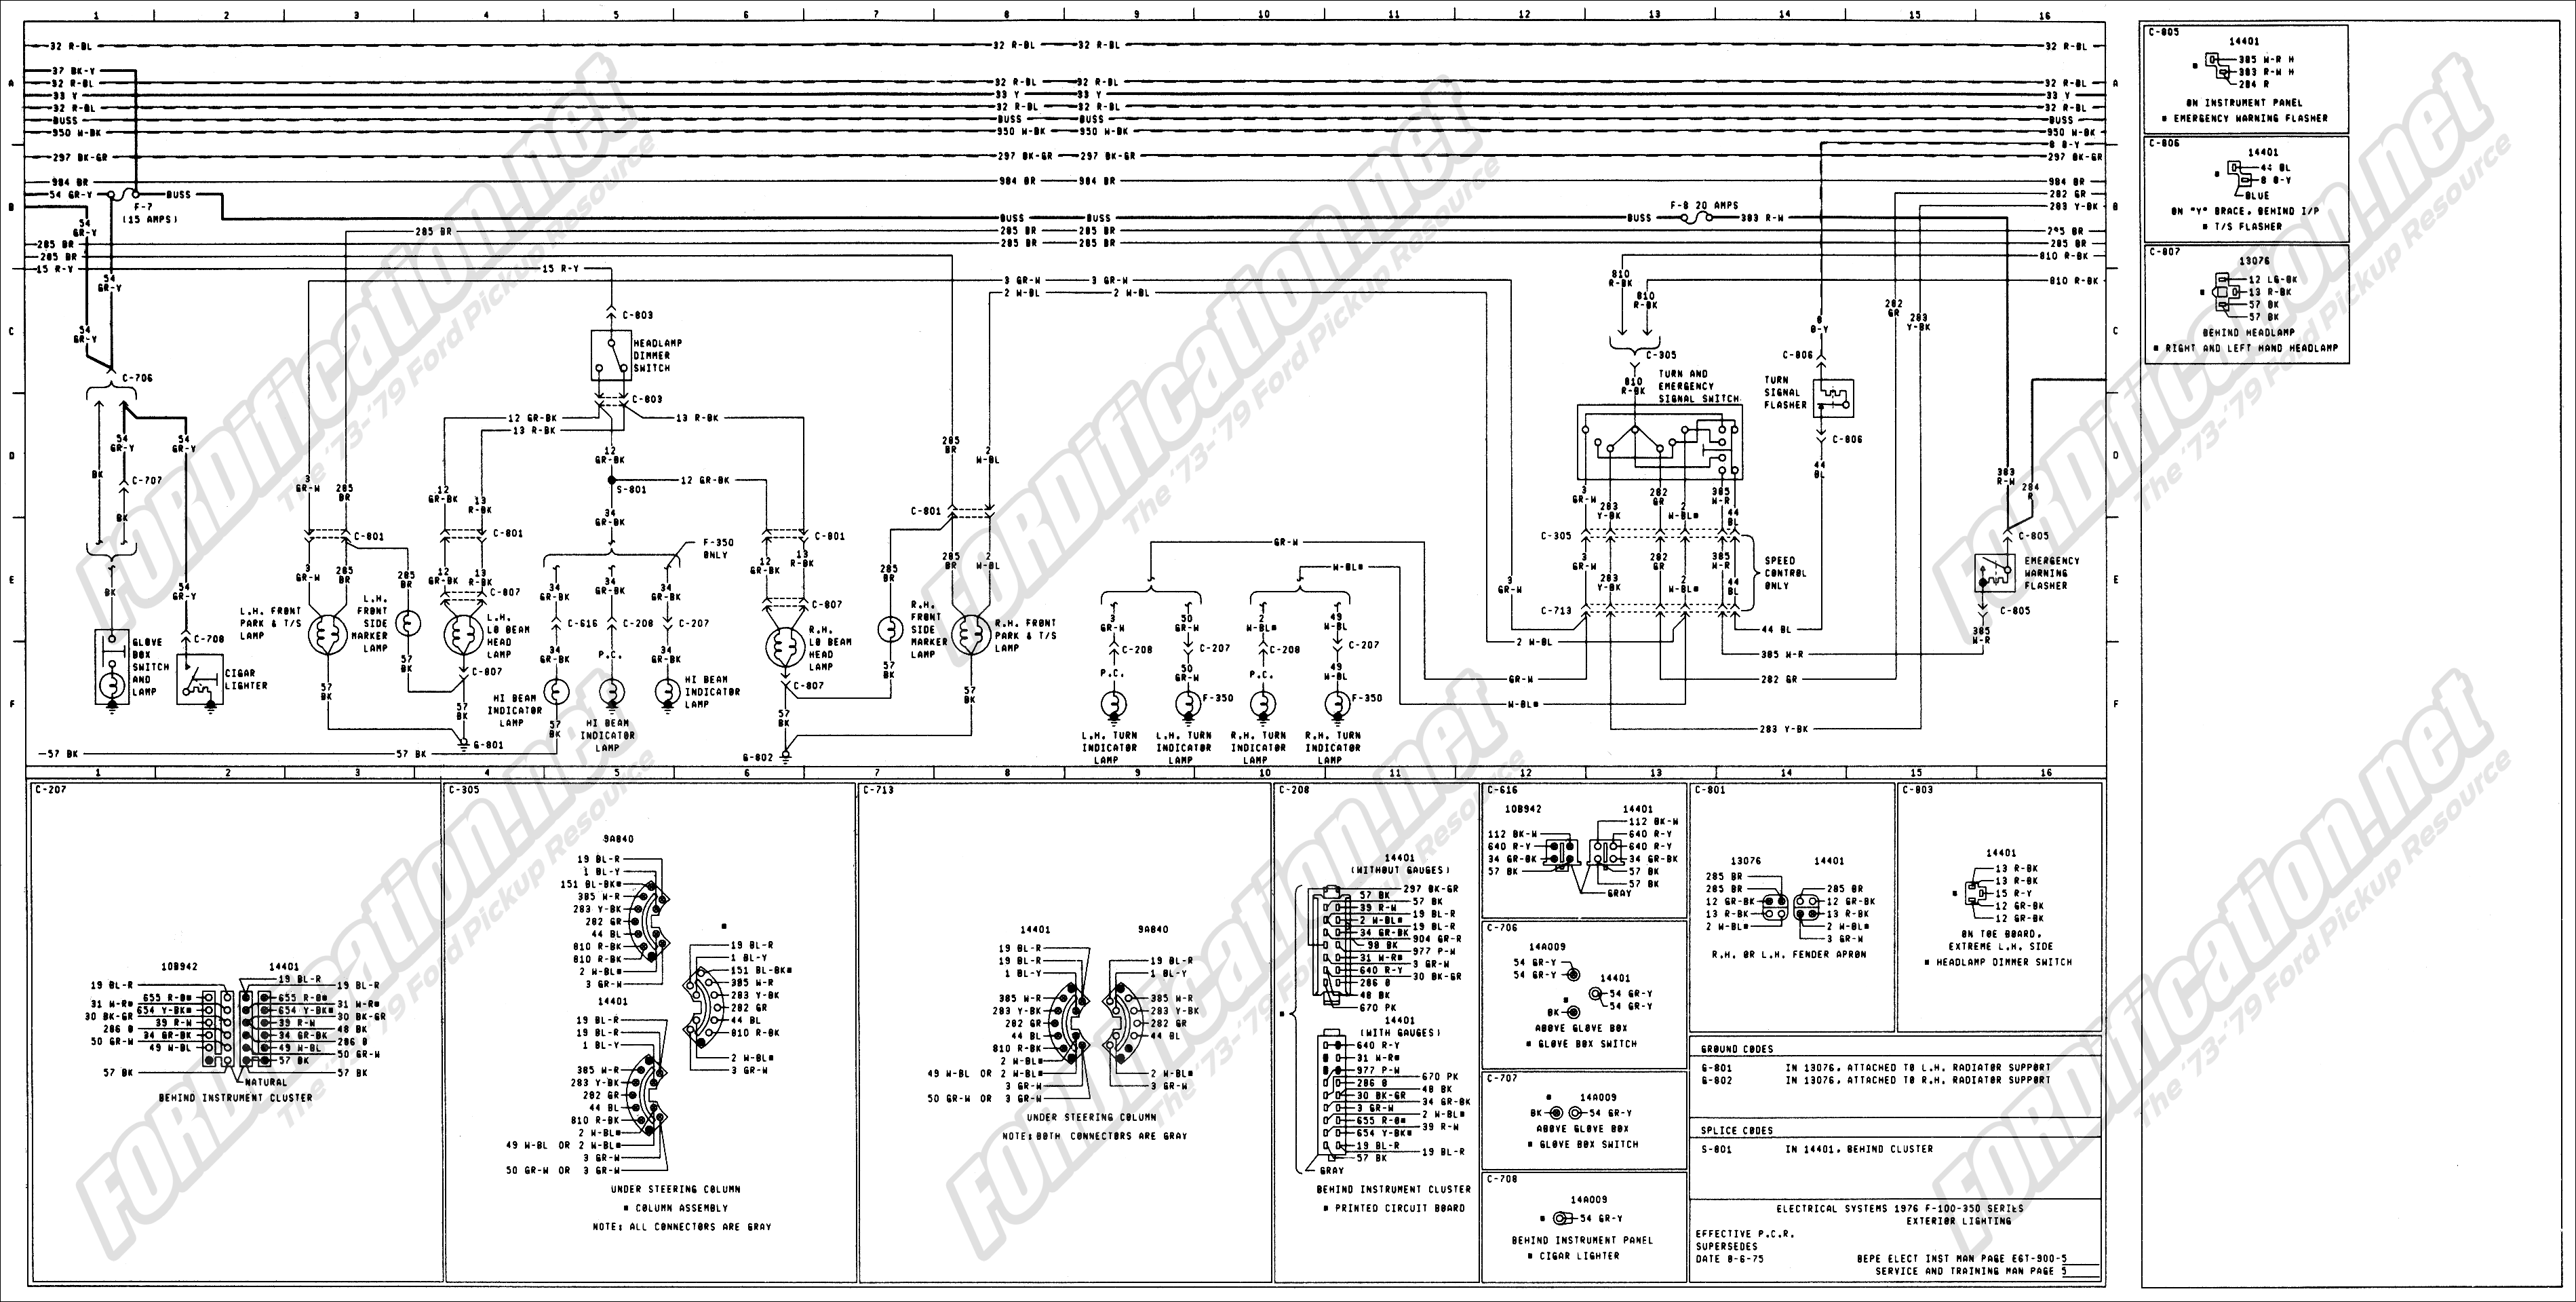 1976 F250 Wiring Diagram - Home Wiring Diagrams Wiring Diagram Ford F Put on 2007 ford f-250 wiring diagram, 1989 ford f-250 wiring diagram, 2002 acura mdx wiring diagram, 1990 ford f-150 fuel pump wiring diagram, 1997 ford f-250 wiring diagram, 1993 ford f-250 wiring diagram, 2003 ford excursion wiring diagram, ford f 450 wiring diagram, 2003 ford f-250 wiring diagram, 1996 ford f-250 wiring diagram, 2006 ford f-250 wiring diagram, 1985 ford f-250 wiring diagram, 2002 toyota highlander wiring diagram, 1990 ford f-250 wiring diagram, 2008 ford f-250 wiring diagram, 2002 cadillac escalade wiring diagram, 2002 chevy express wiring diagram, 1997 ford crown victoria wiring diagram, 1988 ford f-250 wiring diagram, 1999 ford f-250 wiring diagram,